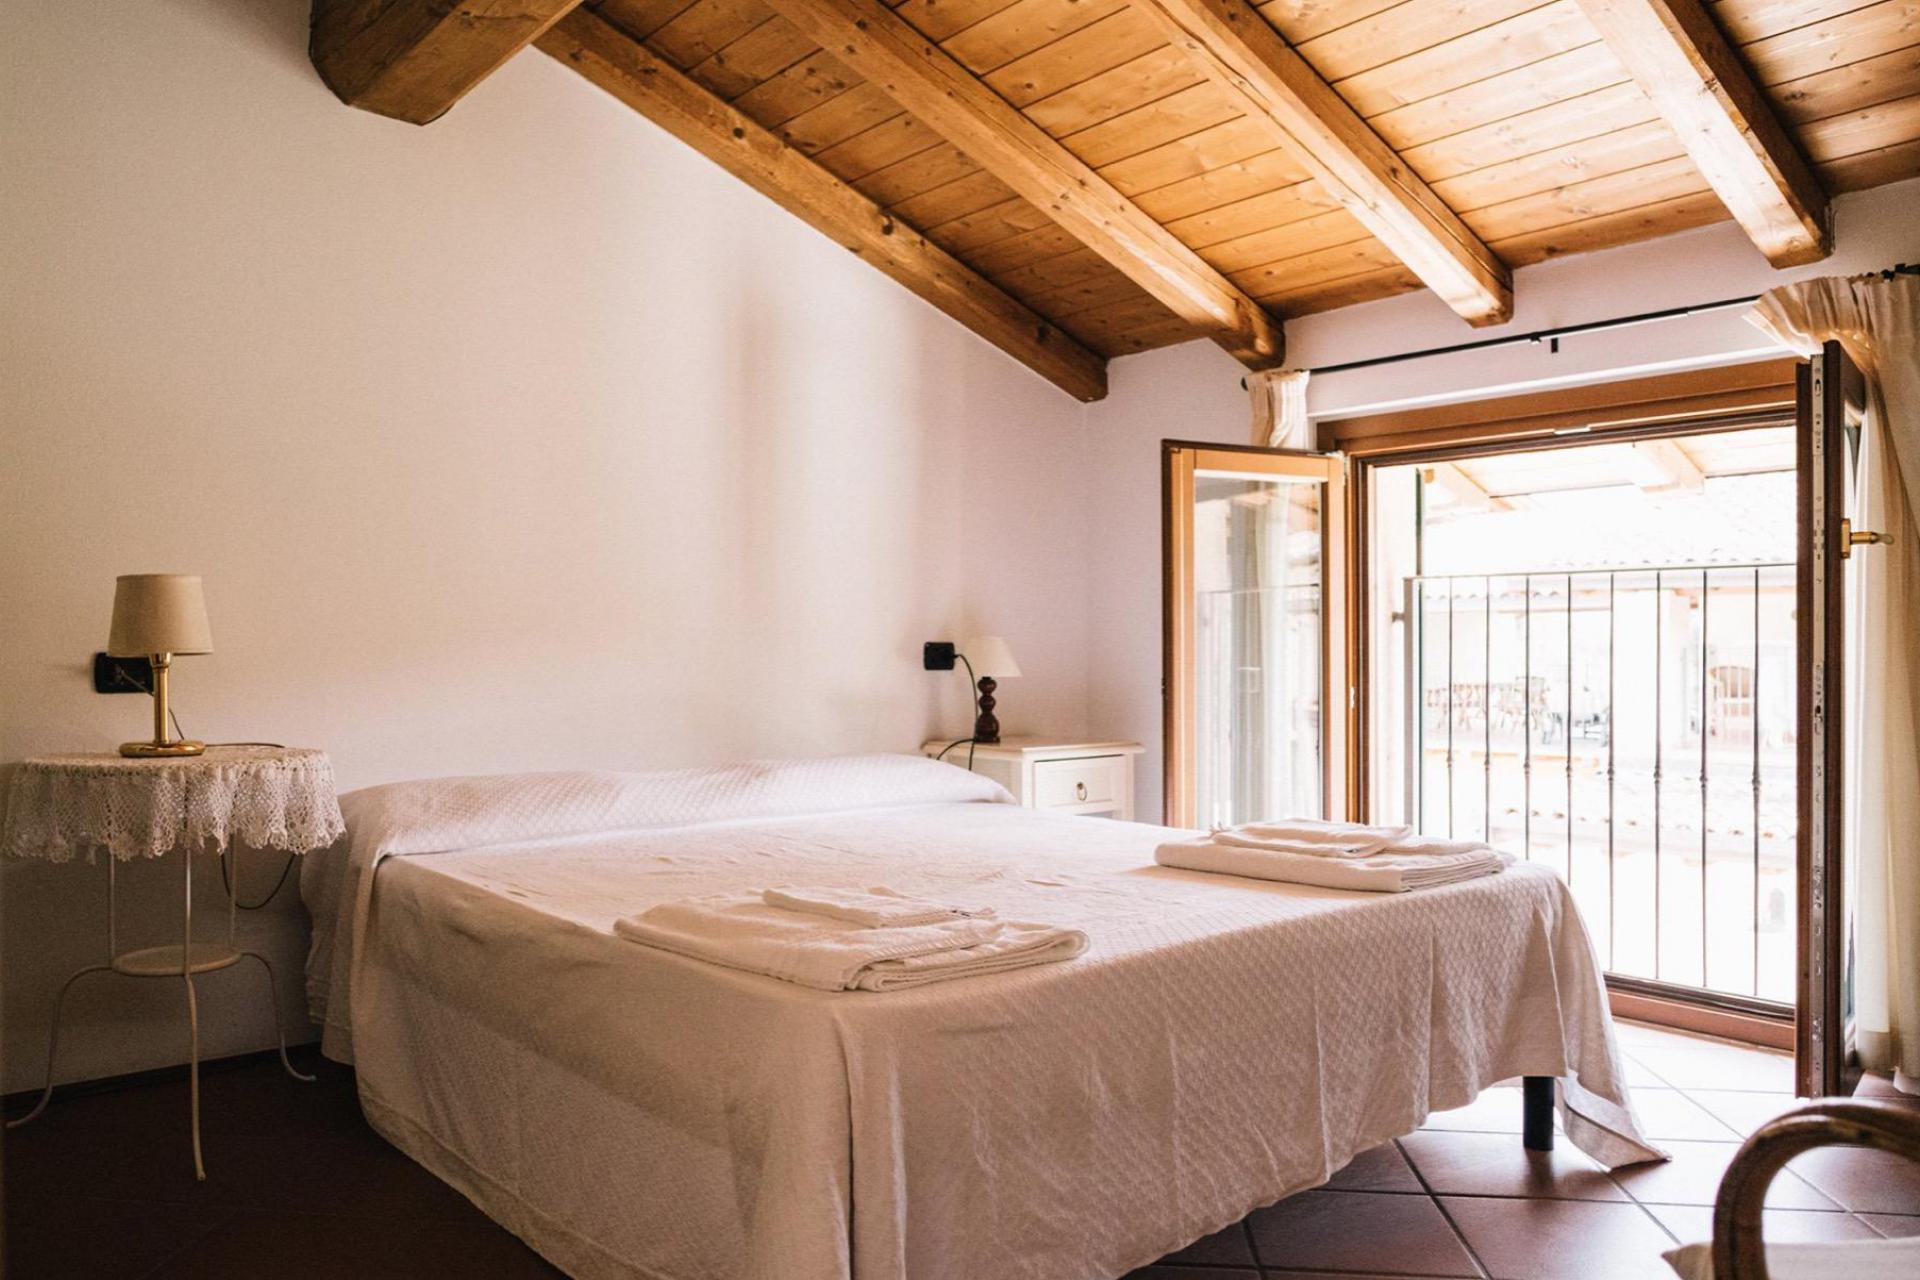 Agriturismo Lake Como and Lake Garda Family-friendly agriturismo lake Garda centrally located